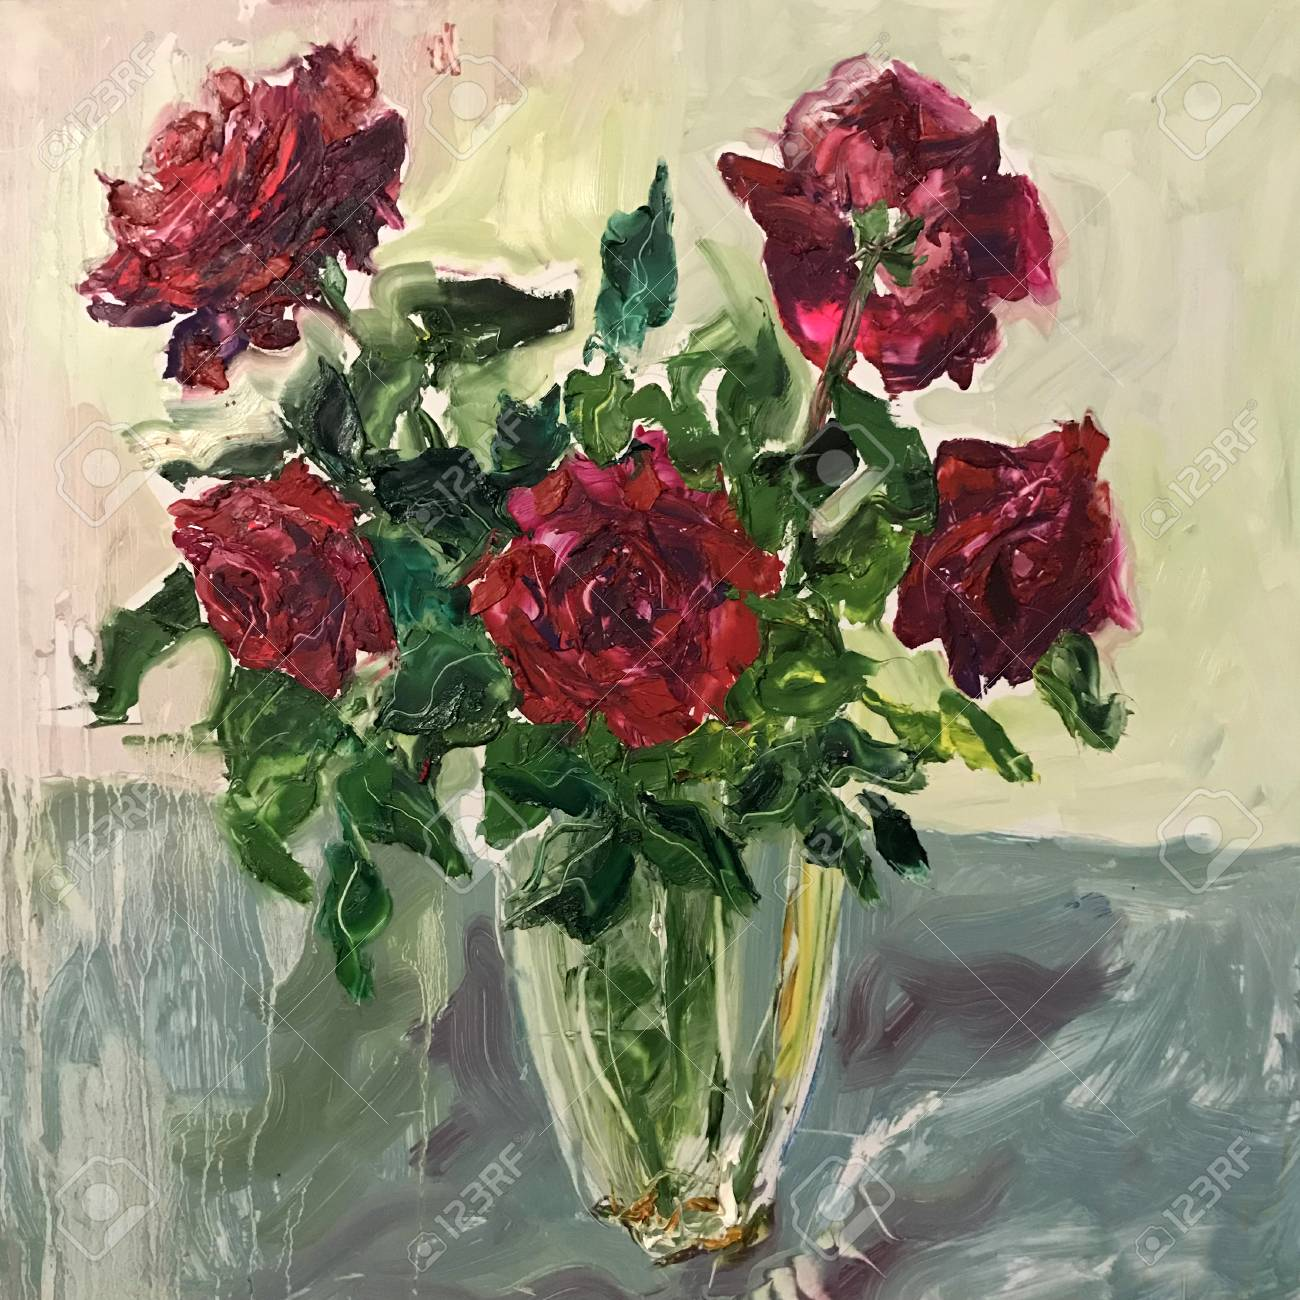 Drawing Of Red Roses Flowers Bouquet In Vase Picture Contains Stock Photo Picture And Royalty Free Image Image 115305008